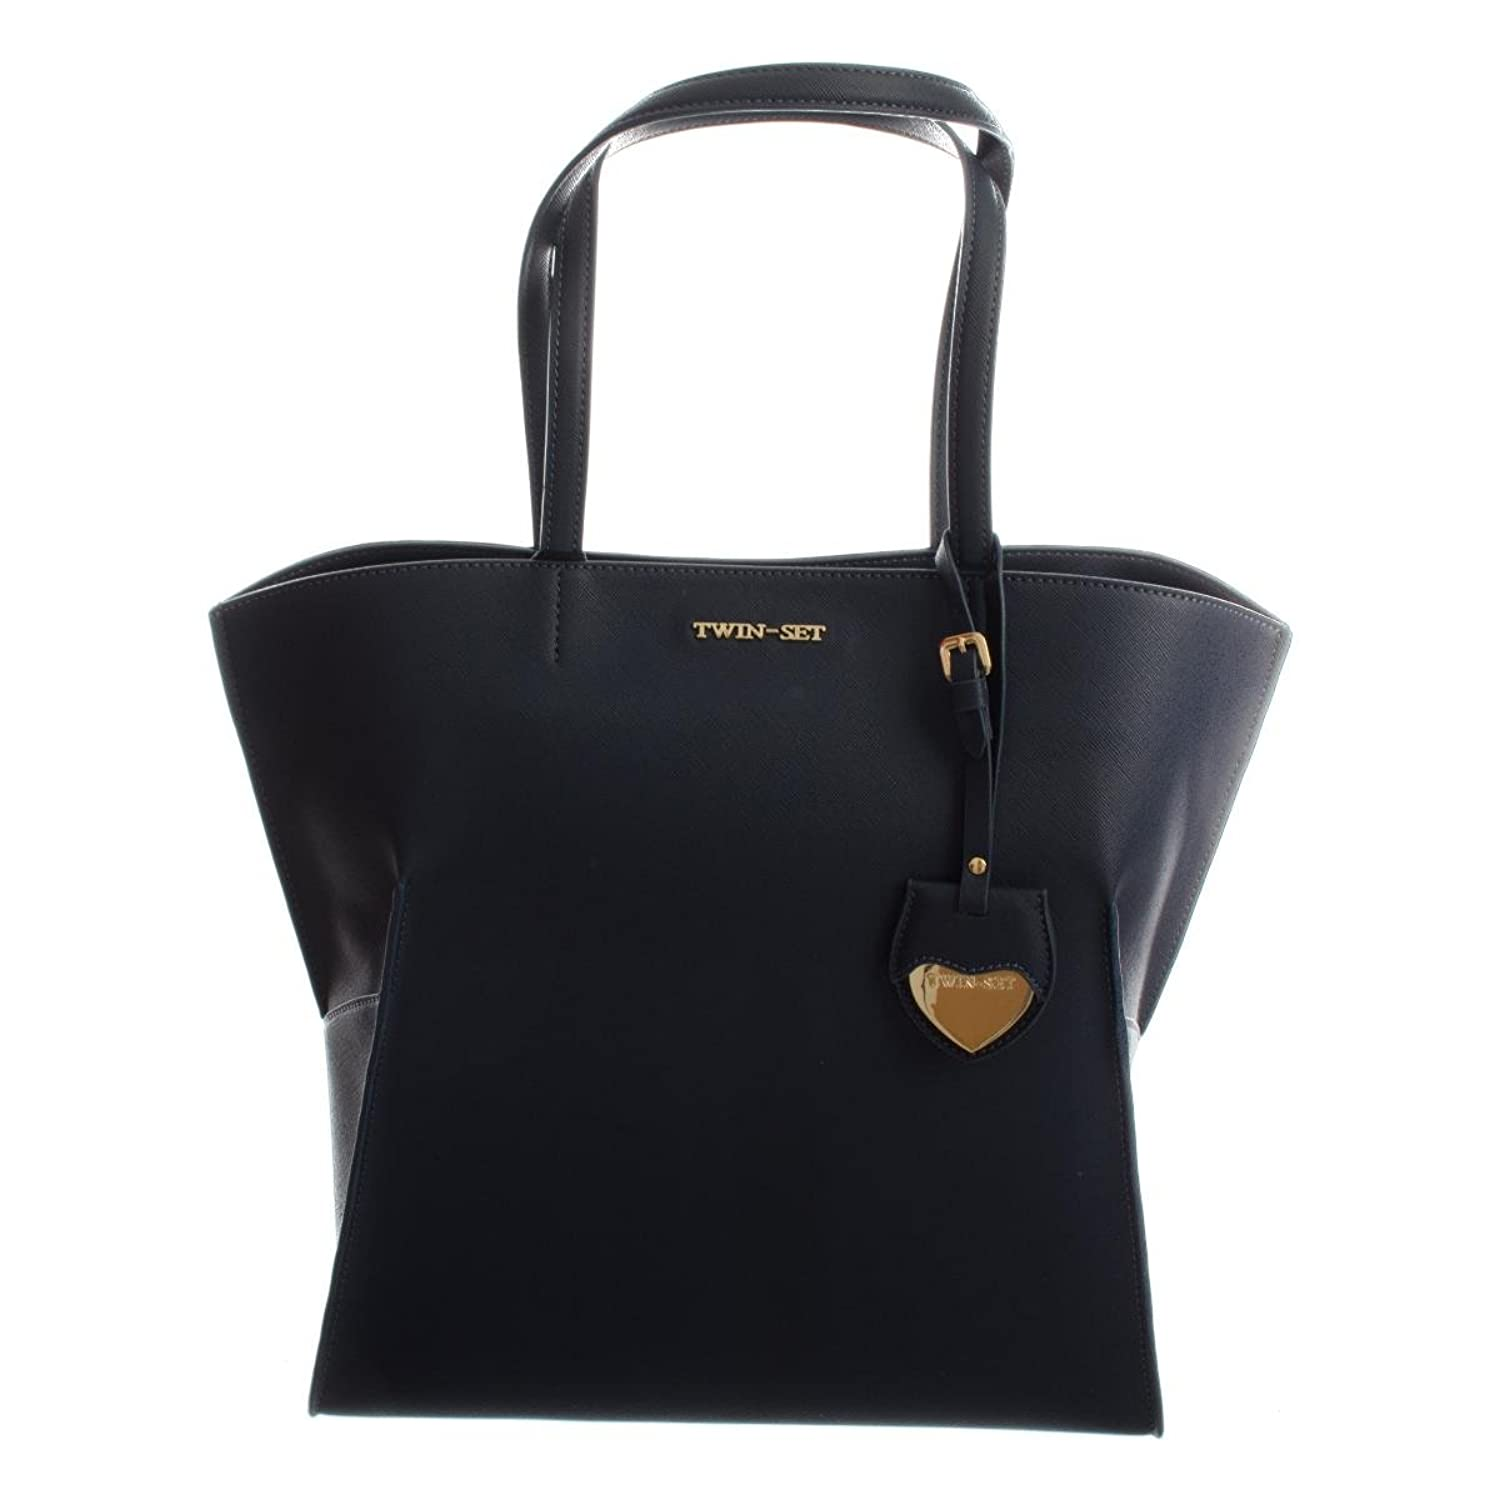 Twin-Set Shopping Taglio Vivo damen, accessori: borsa a mano, schwarz